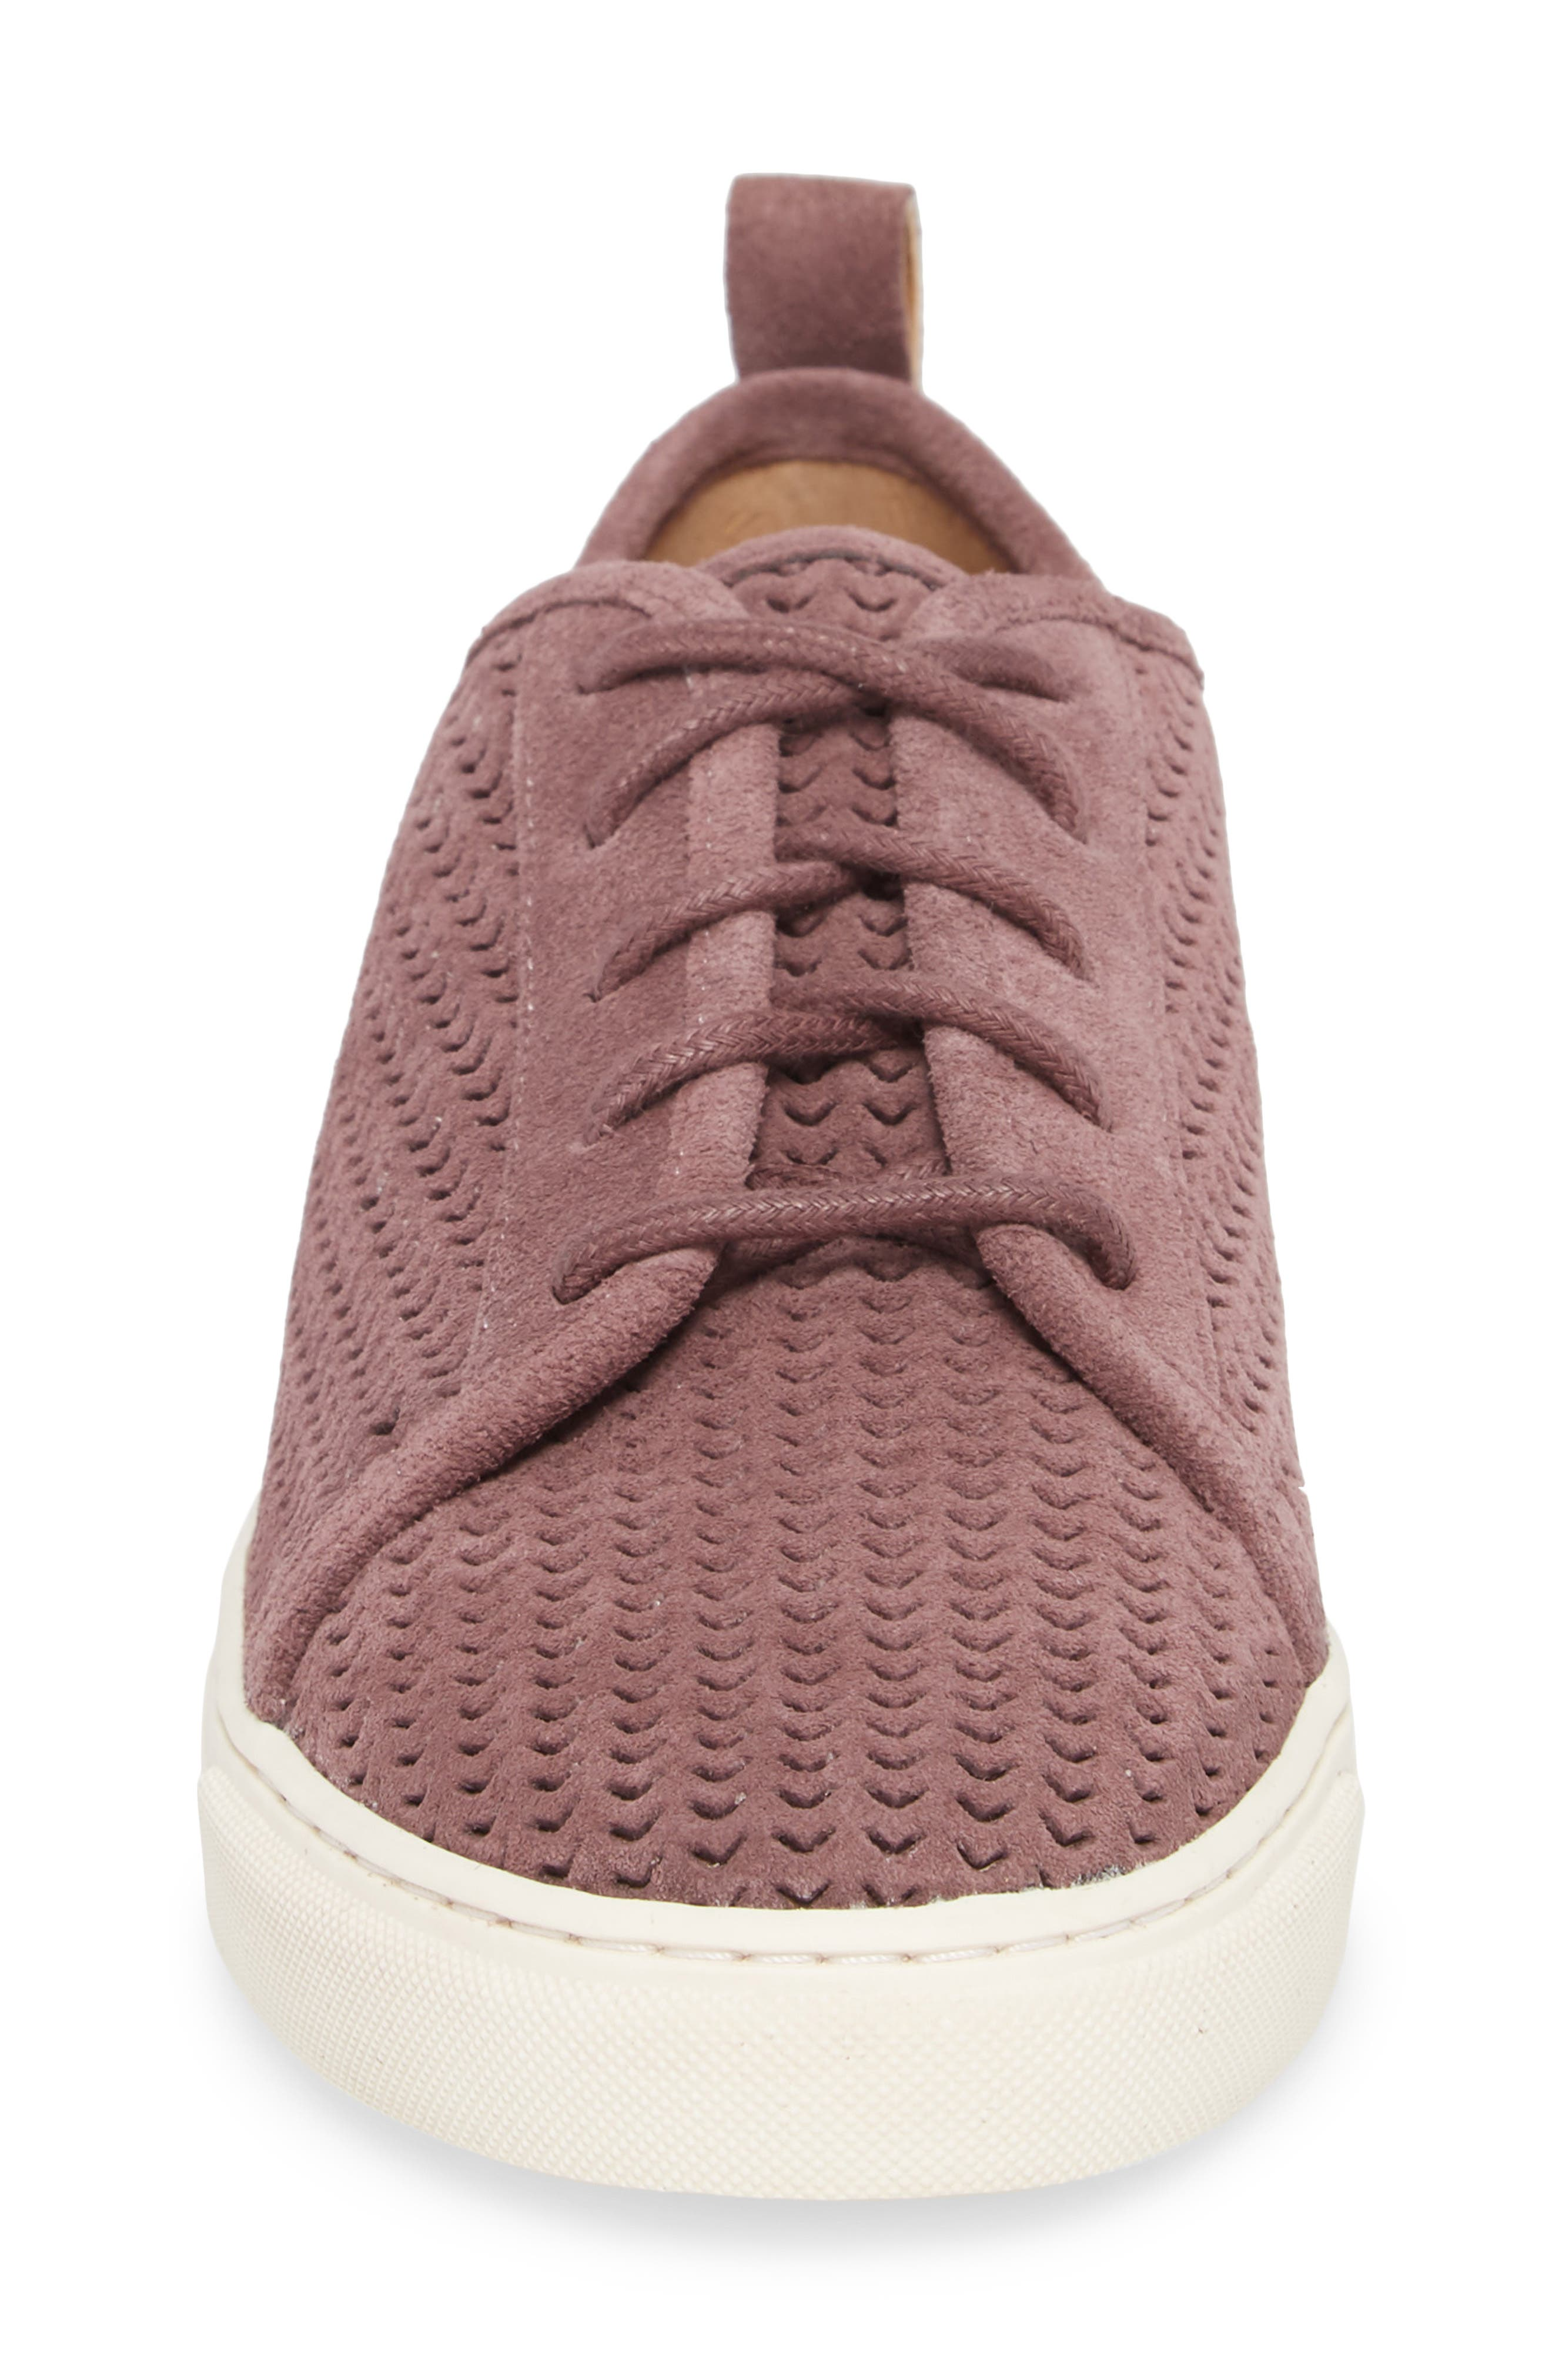 Lawove Sneaker,                             Alternate thumbnail 4, color,                             Berry Smooth Suede